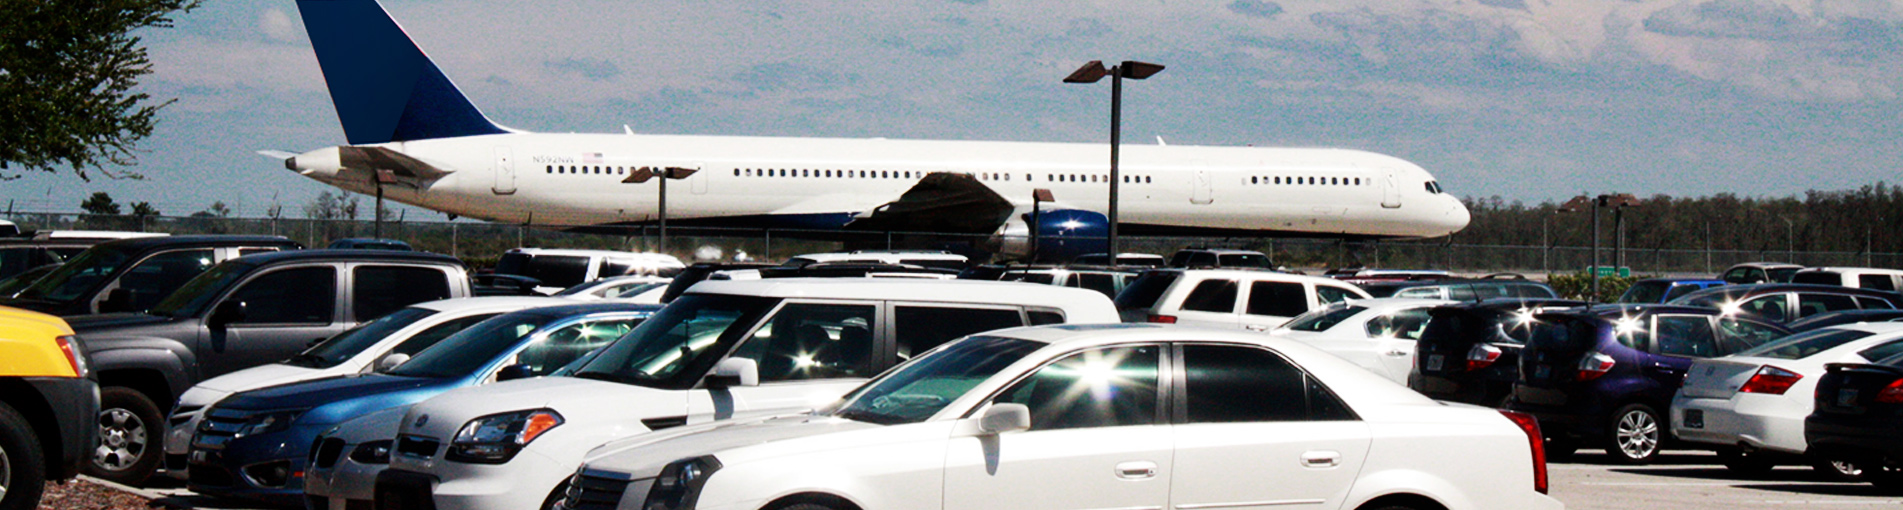 airport_car_parking